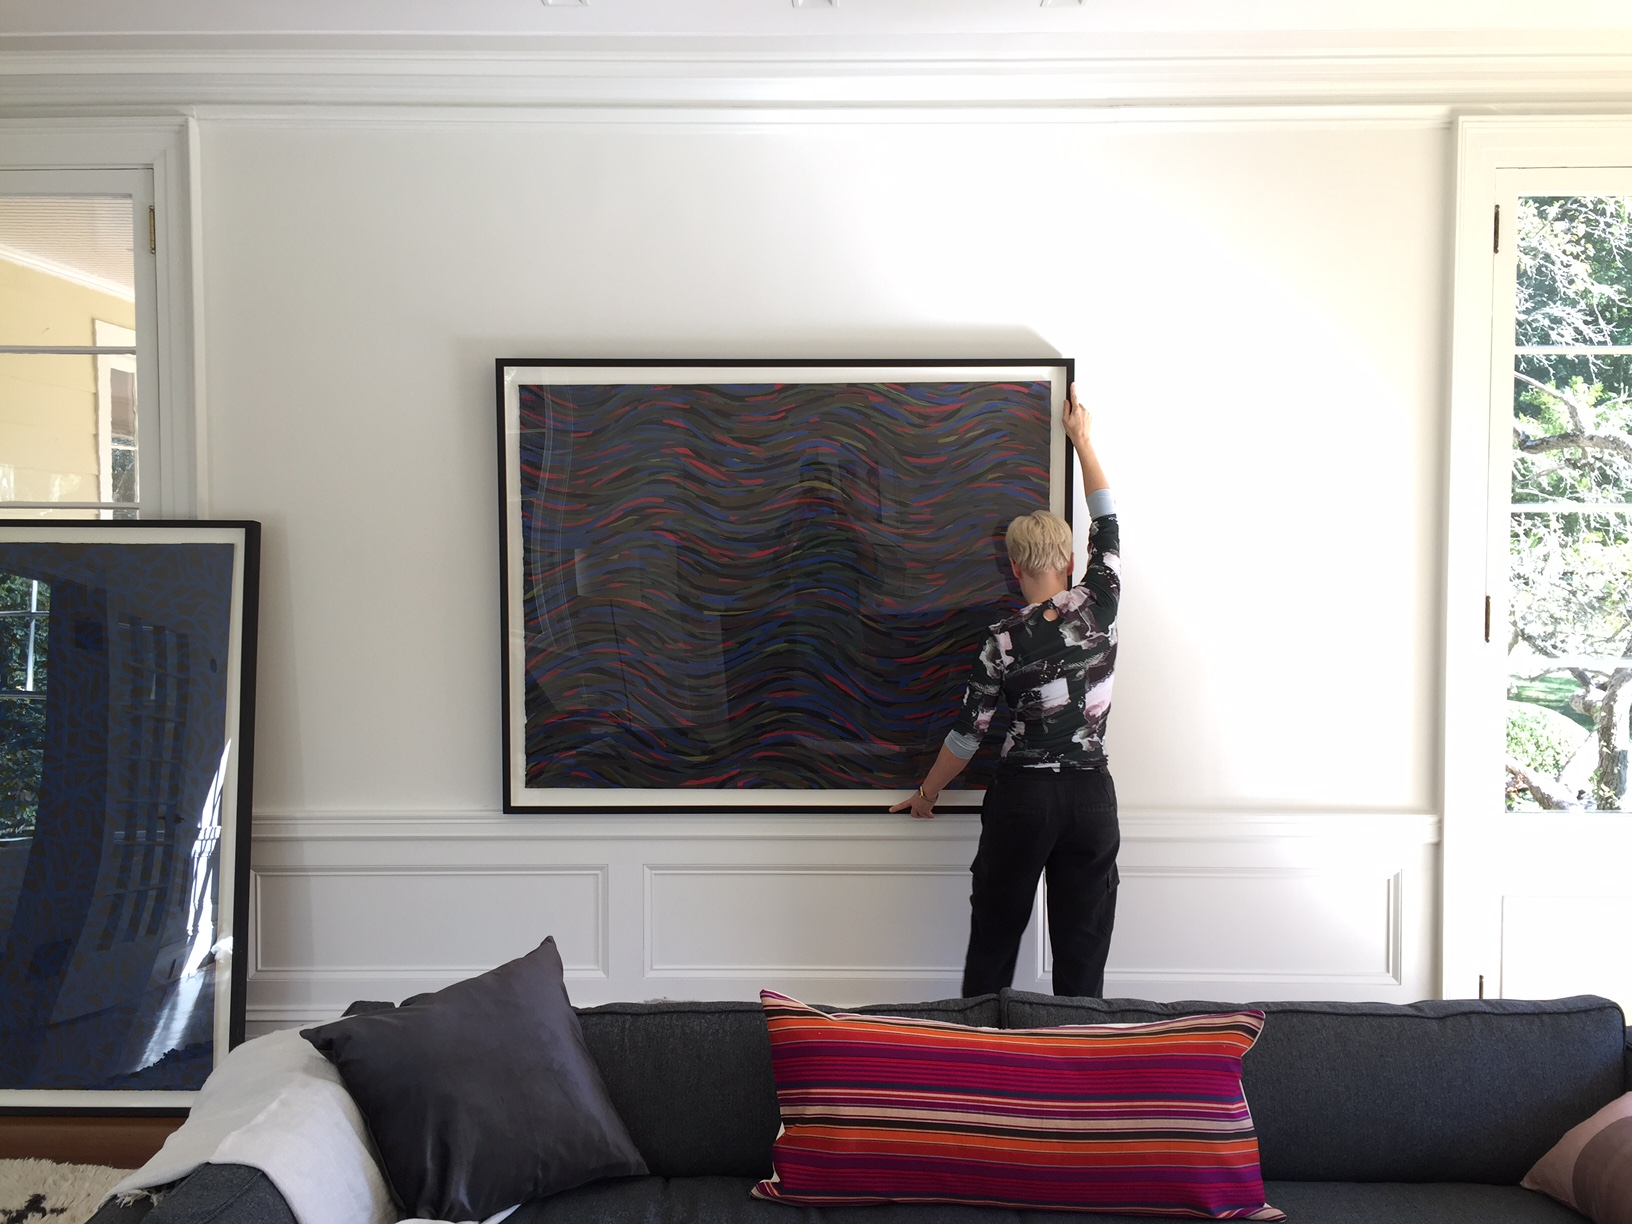 Installation of a client's art collection.